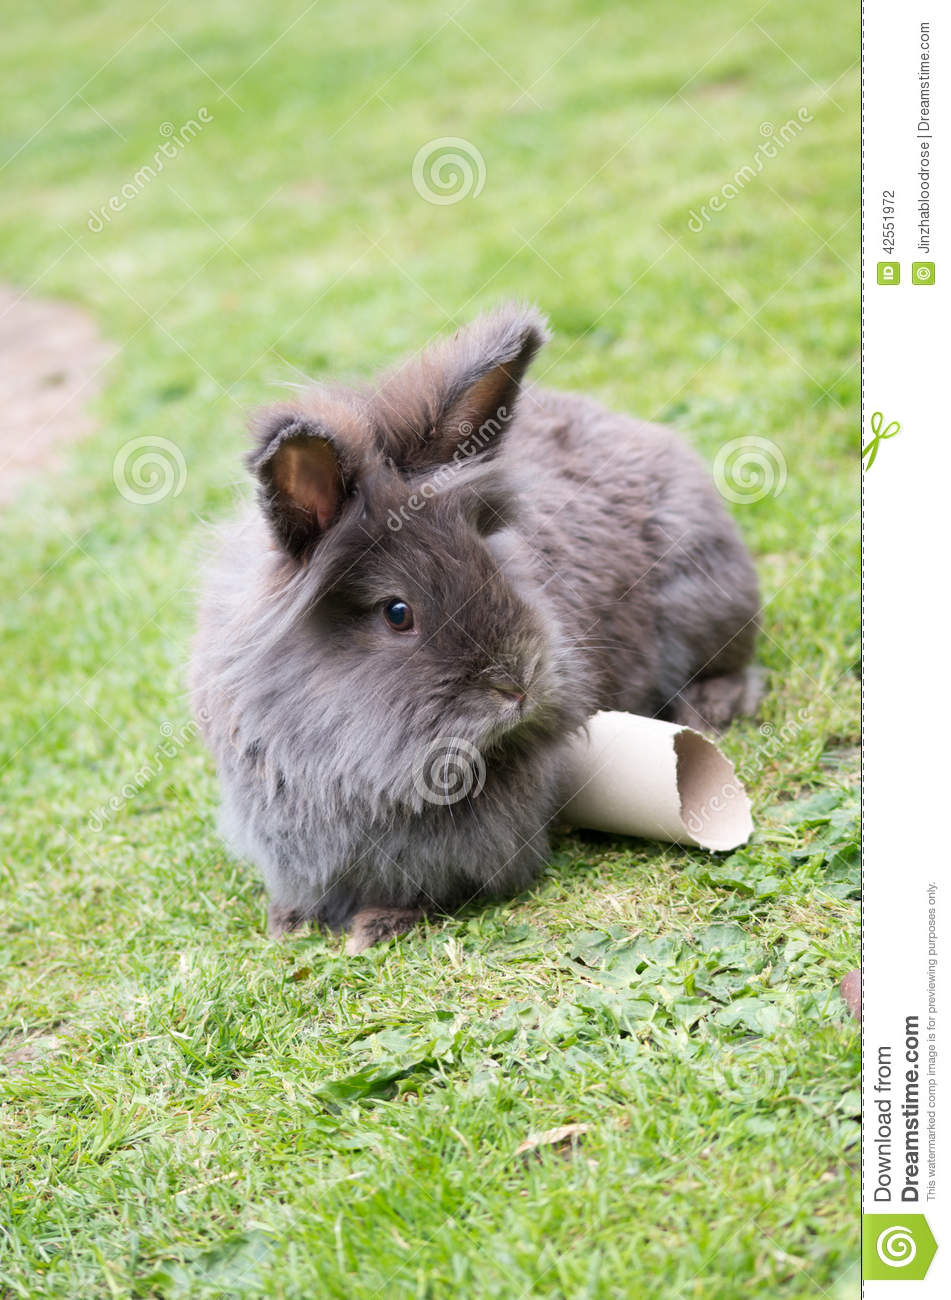 Brown and white lionhead rabbit - photo#41